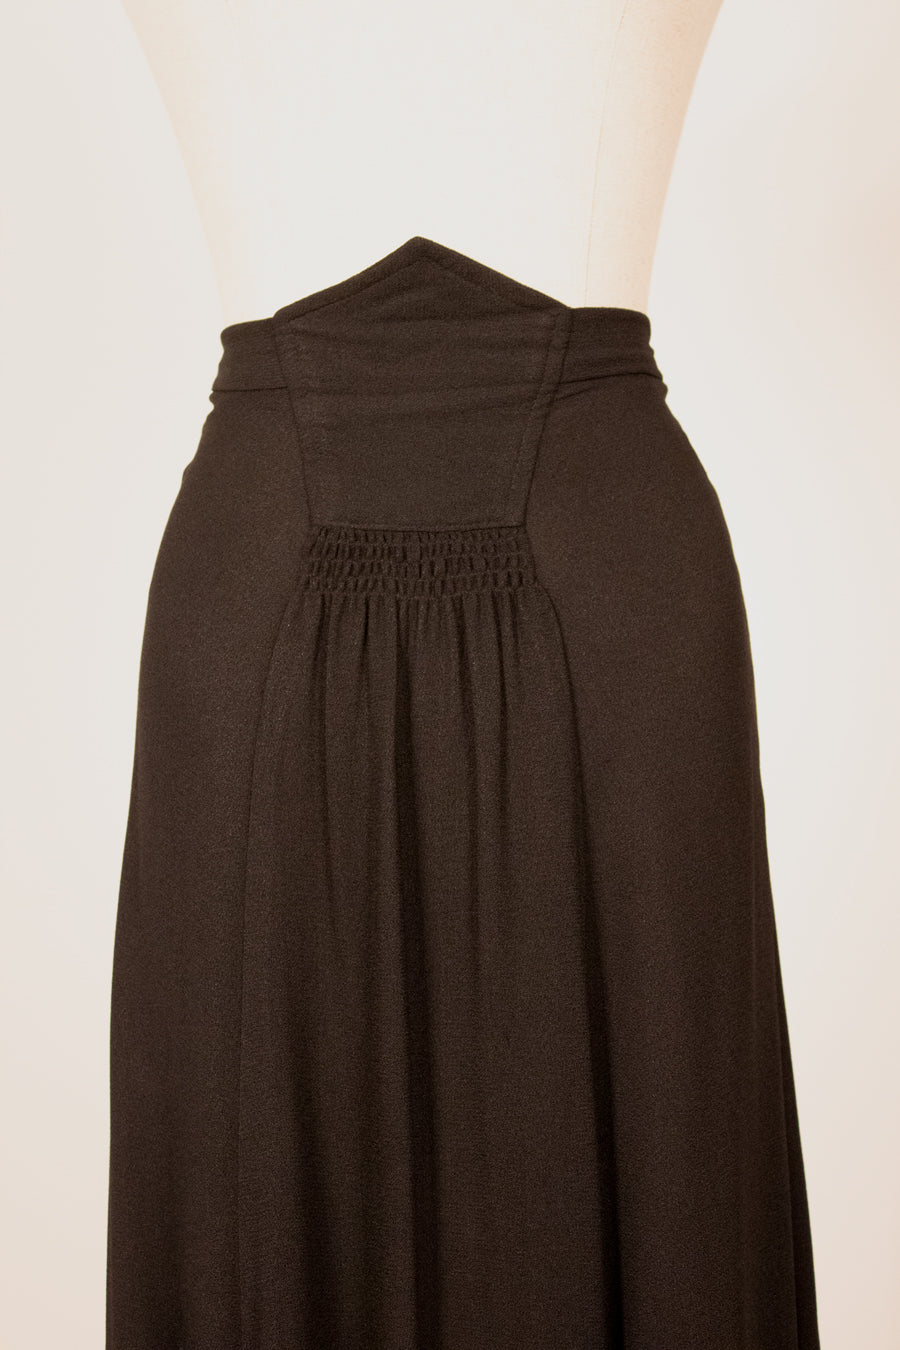 Henri Bendel black crepe maxi skirt